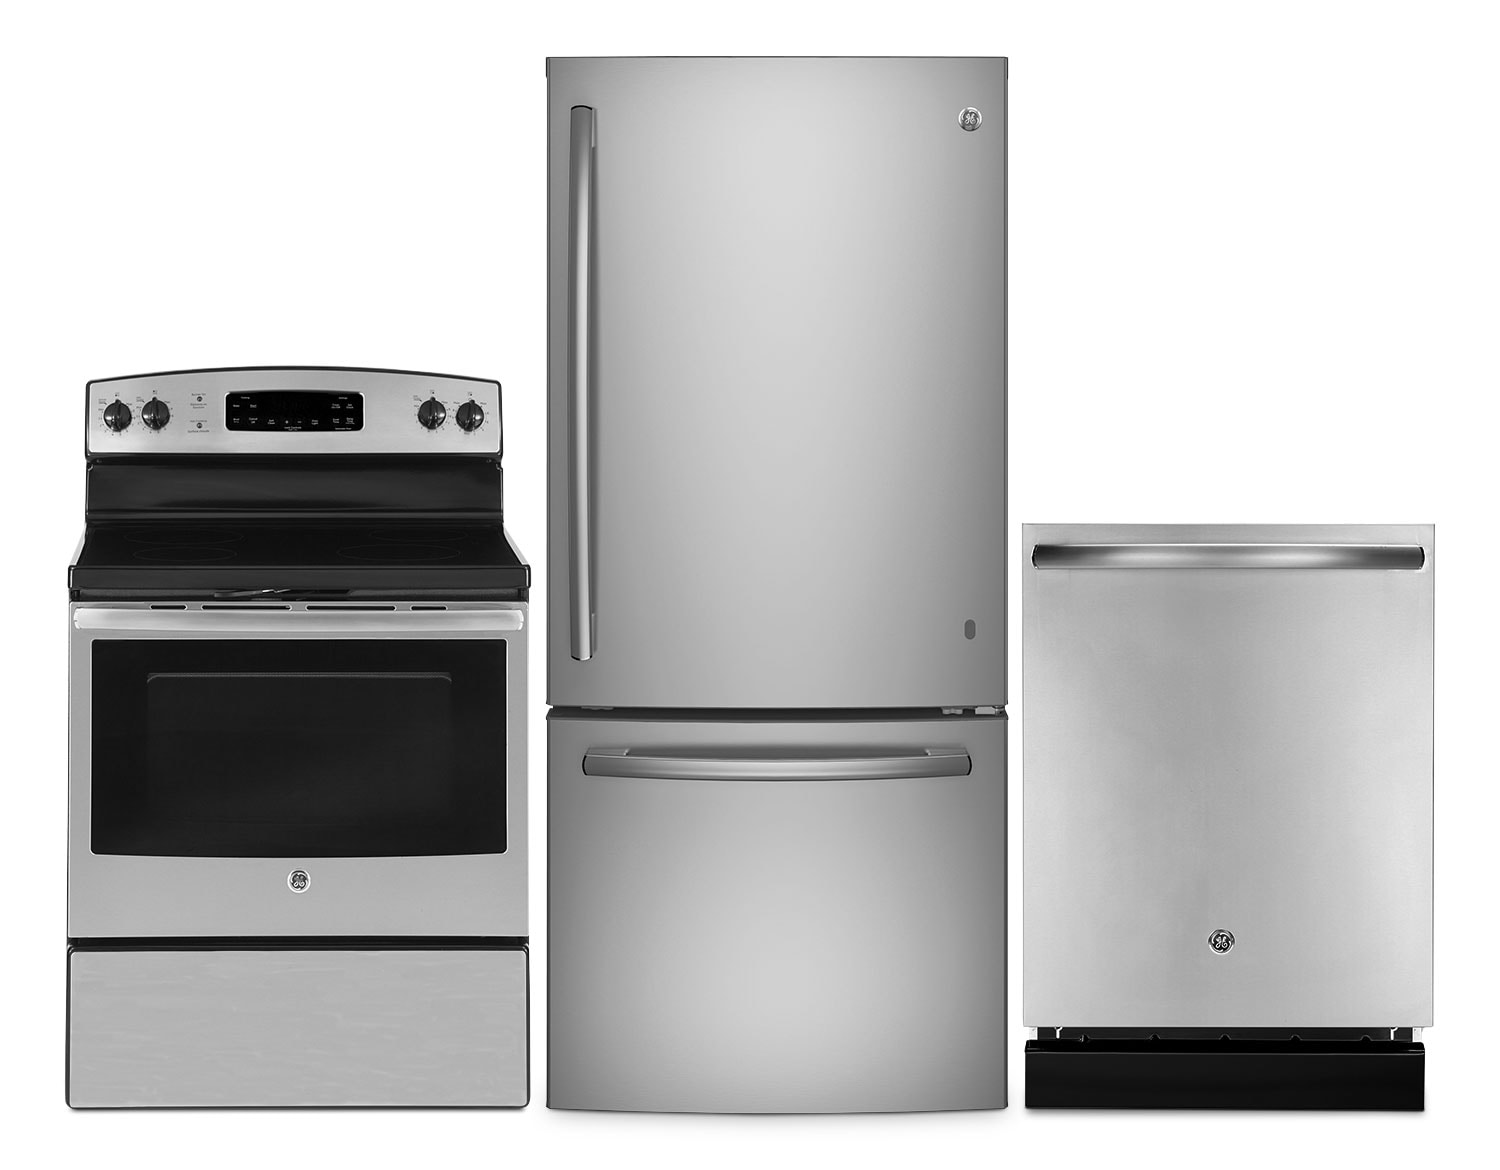 Cooking Products - GE 21 Cu. Ft. Bottom-Mount Refrigerator, 5.0 Cu. Ft. Electric Range and Dishwasher – Stainless Steel